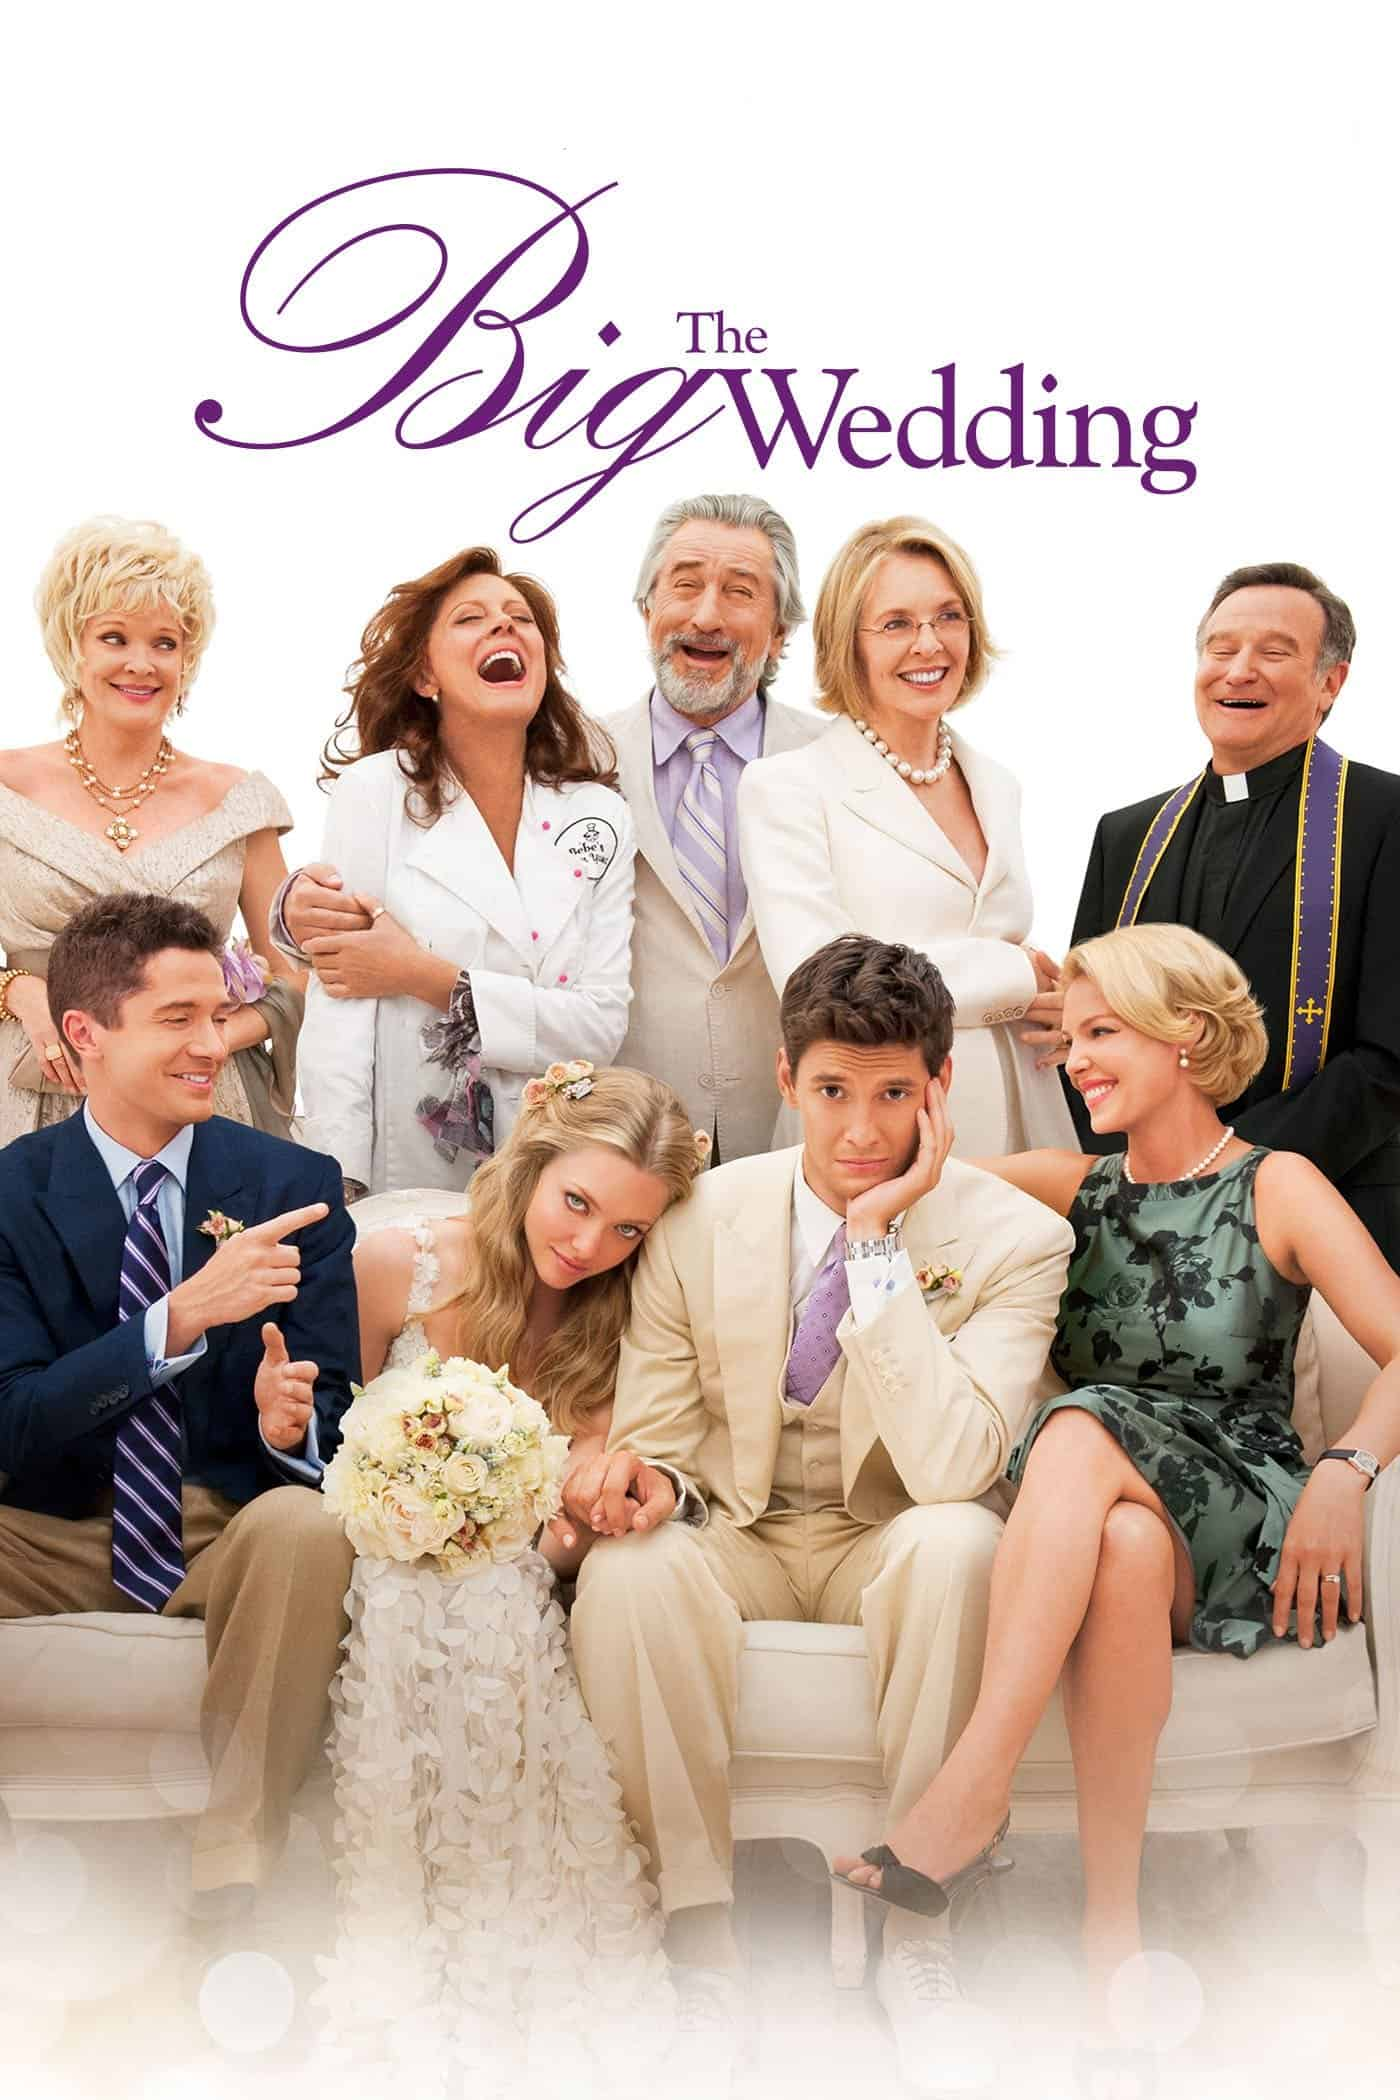 The Big Wedding, 2013